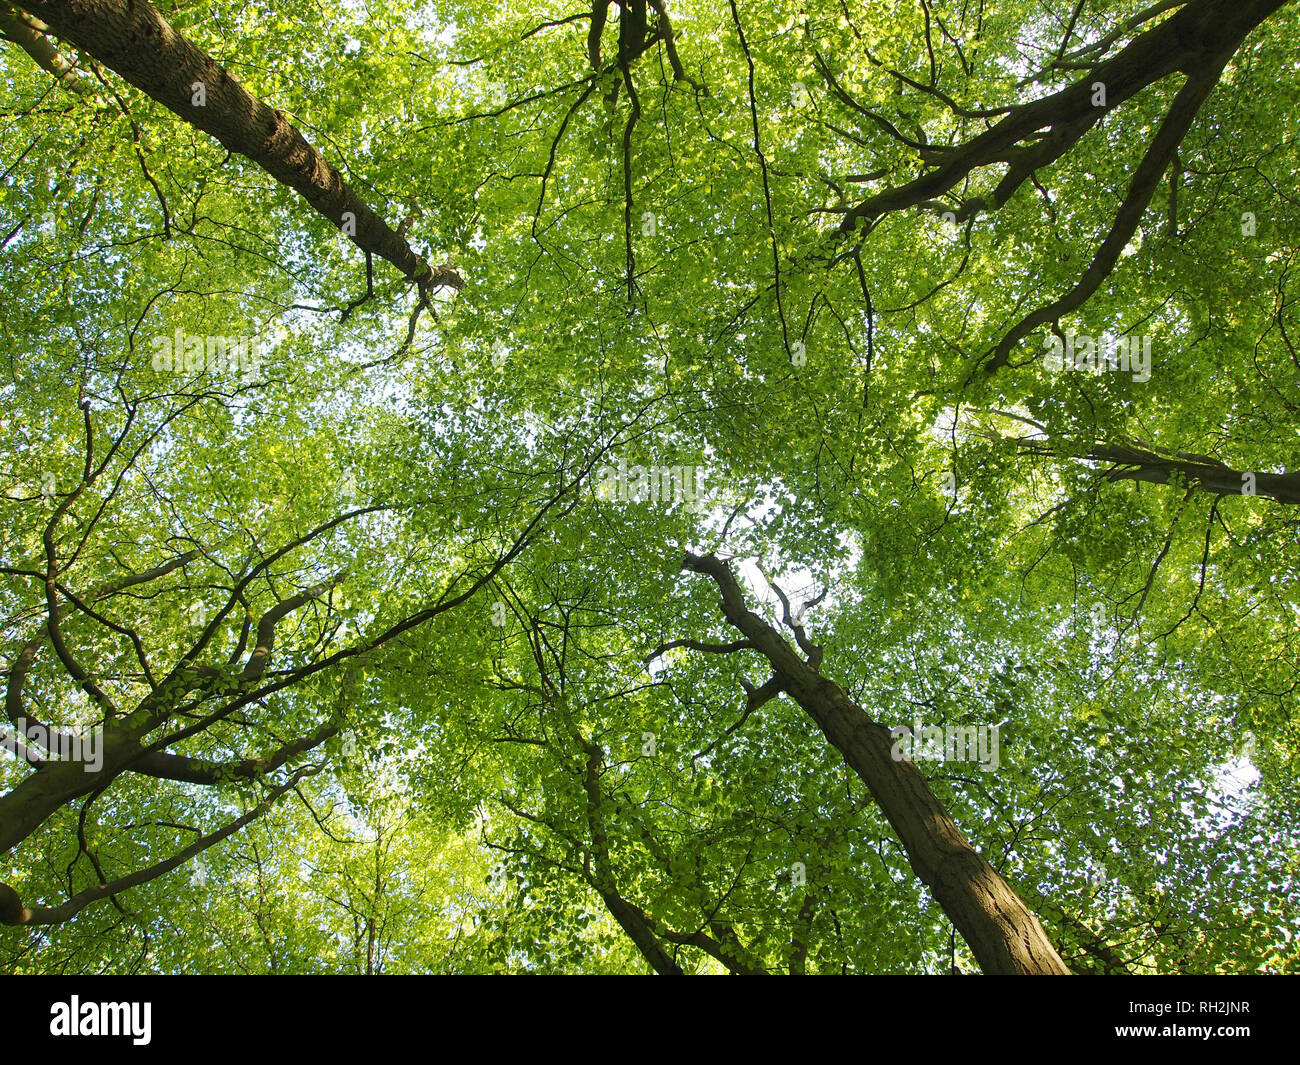 "Beech tree canopy showing what is known as ""crown shyness"" in the tree tops. Young beech leaves with backlight. Stock Photo"